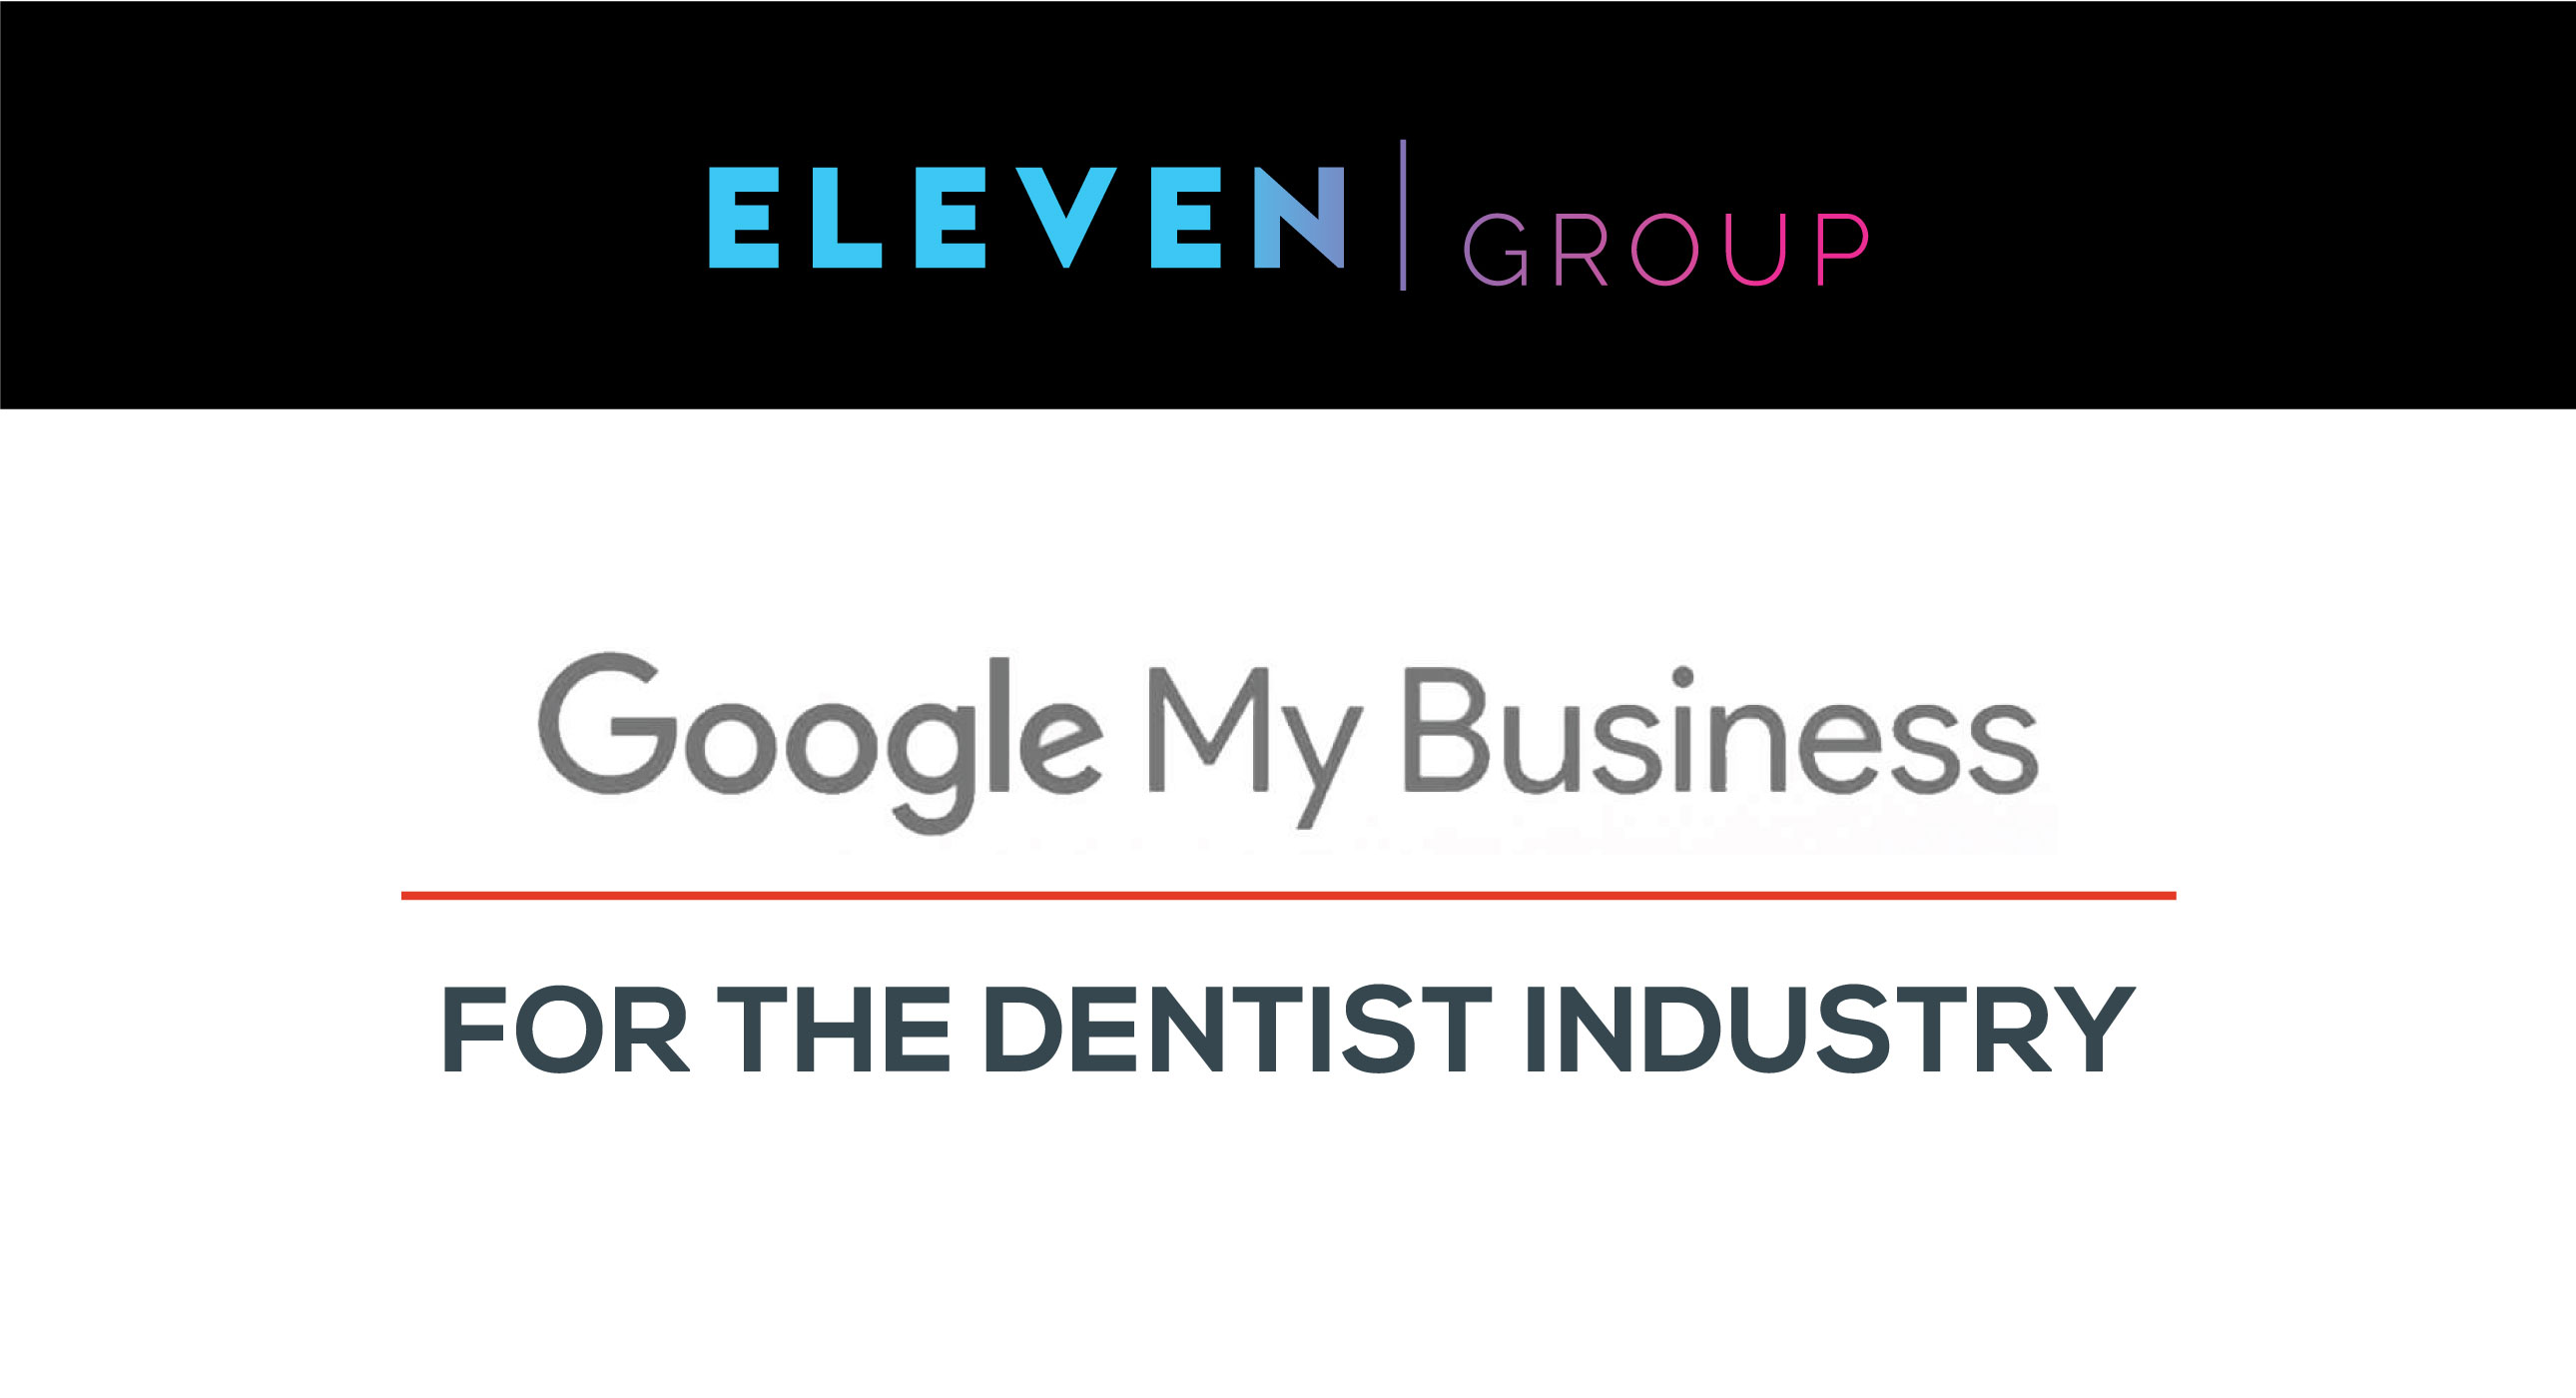 Best Times To Post Google My Business | Dental Industry